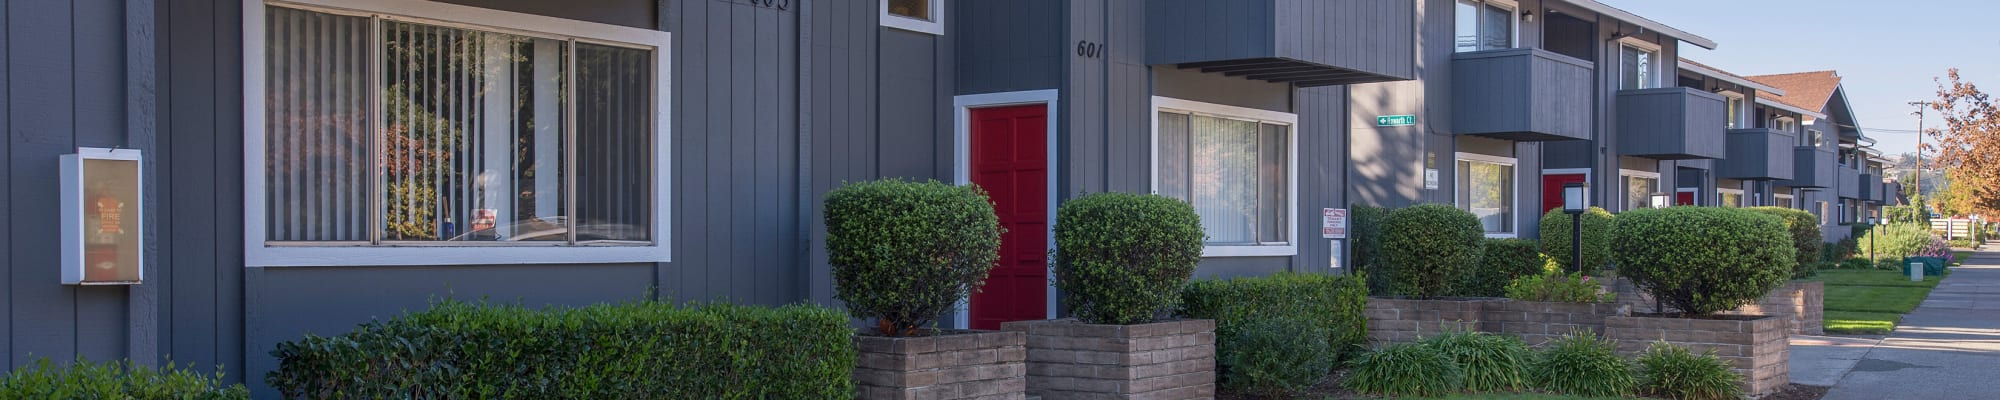 Resident perks at Spring Lake Apartment Homes in Santa Rosa, California